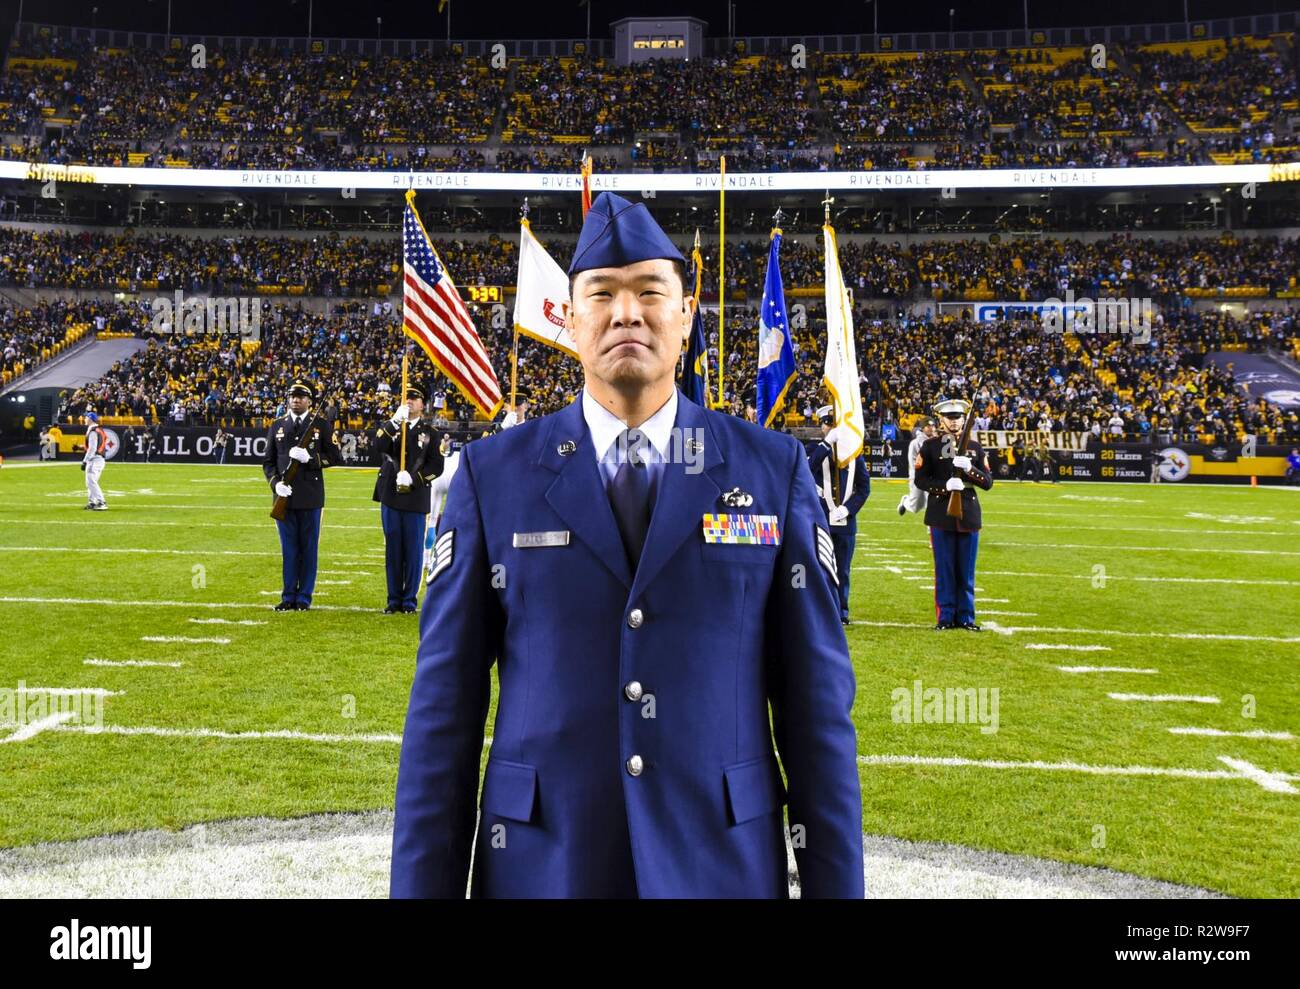 Former Air Force Staff Sgt. Mark Lindquist stands midfield before performing the national anthem in front of a joint services color guard during the NFL's production of Thursday Night Football Nov. 8, 2018. Stock Photo